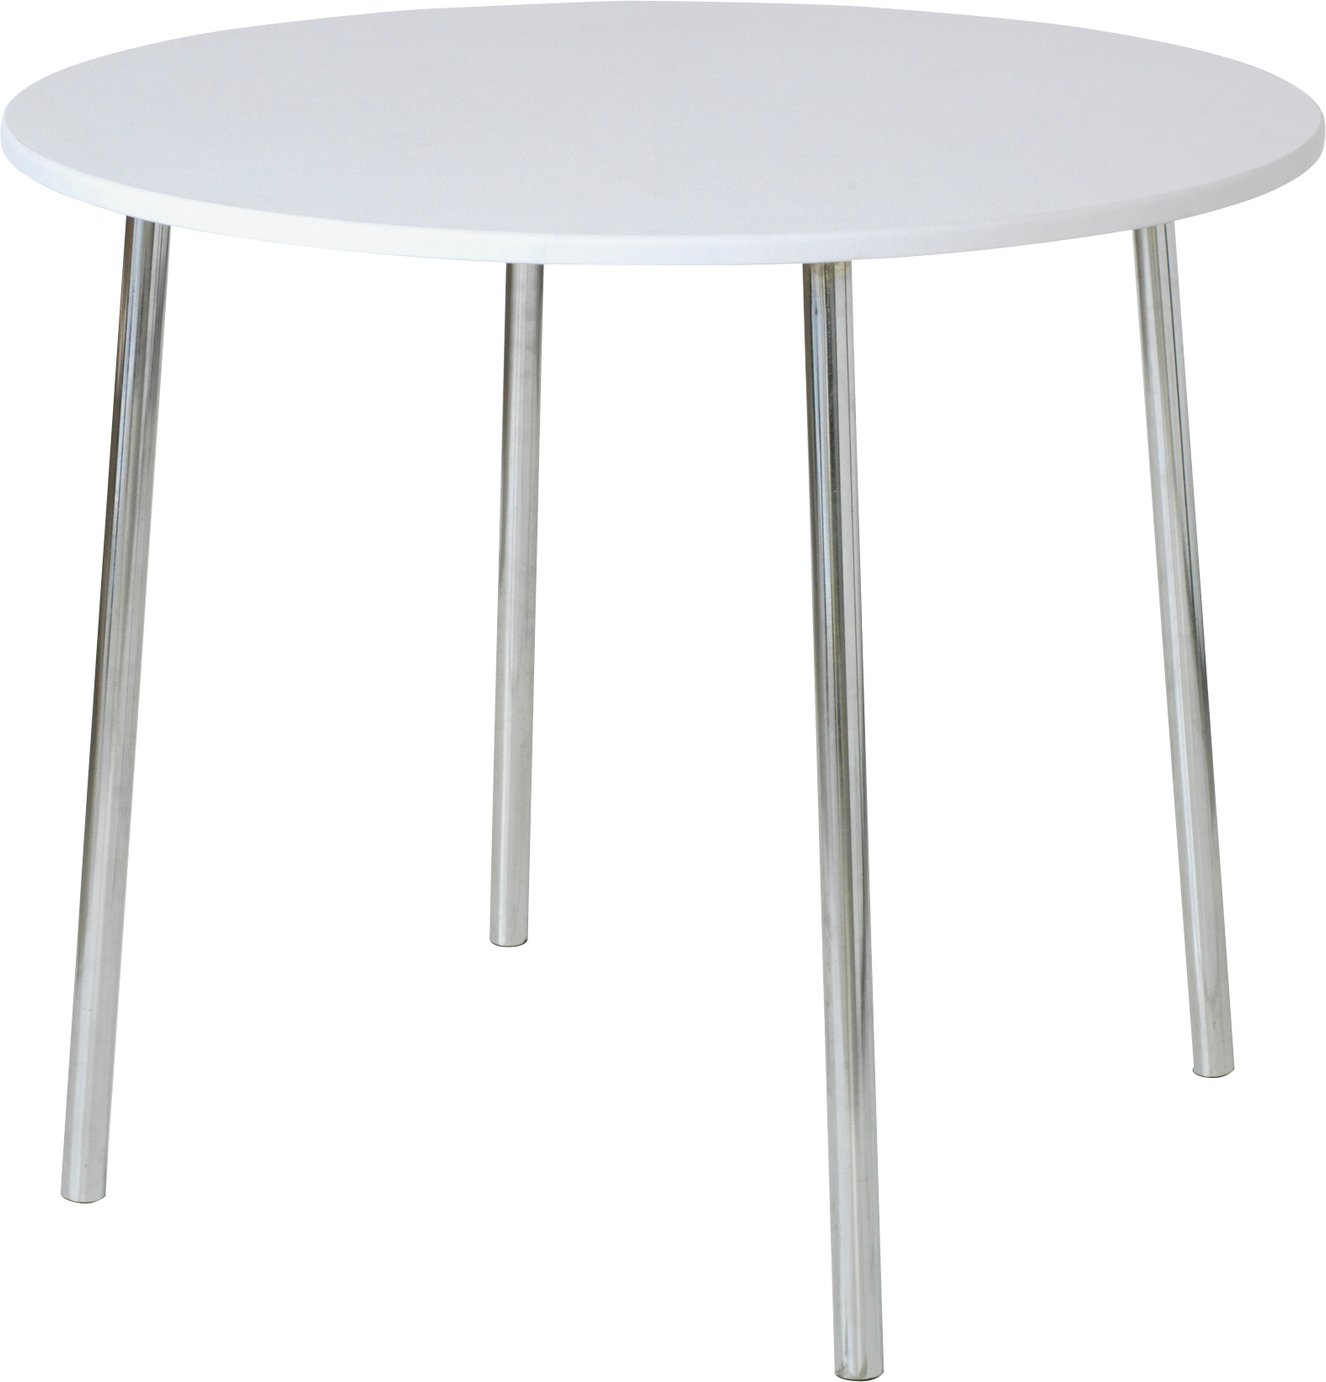 White Round Kitchen Table buy home round kitchen wood effect 2 seater dining table - white